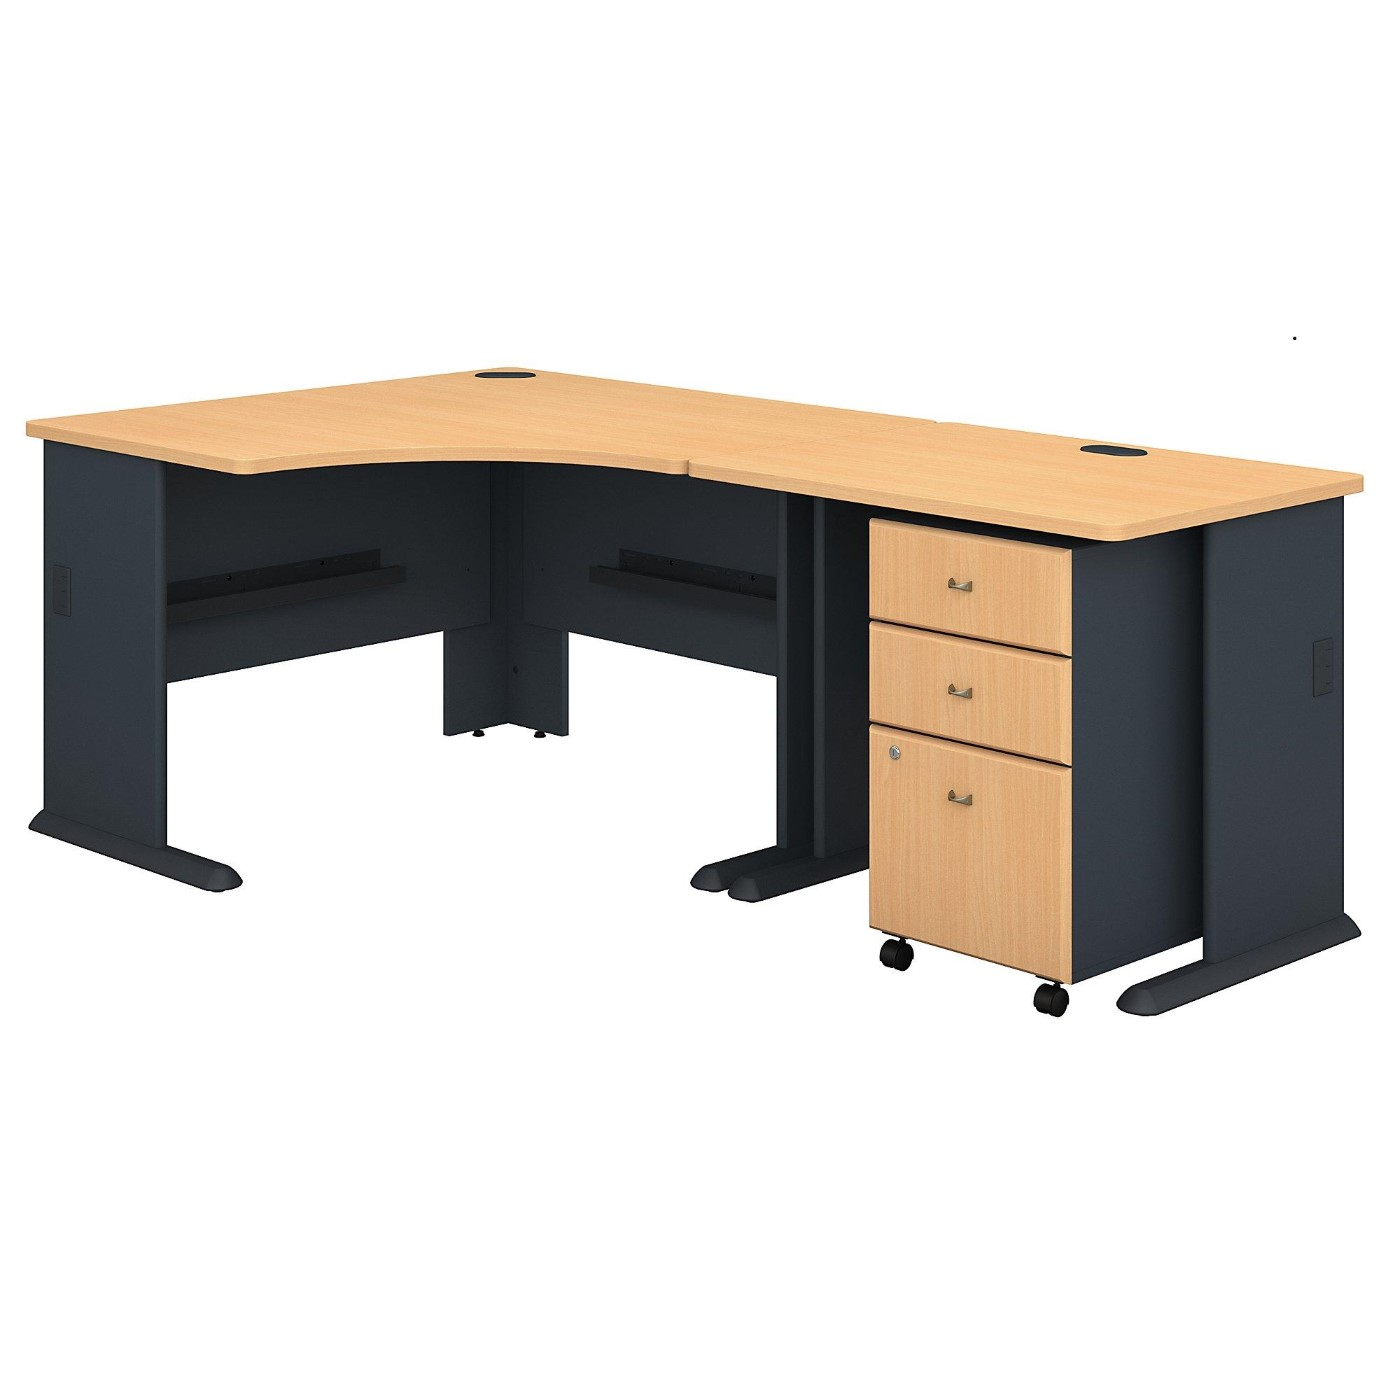 BUSH OFFICE FURNITURE SERIES A 48W CORNER DESK W/36W RETURN W/MOBILE FILE CABINET. SUSTAINABLE FURNITURE #EH-SRA005BESU. FREE SHIPPING